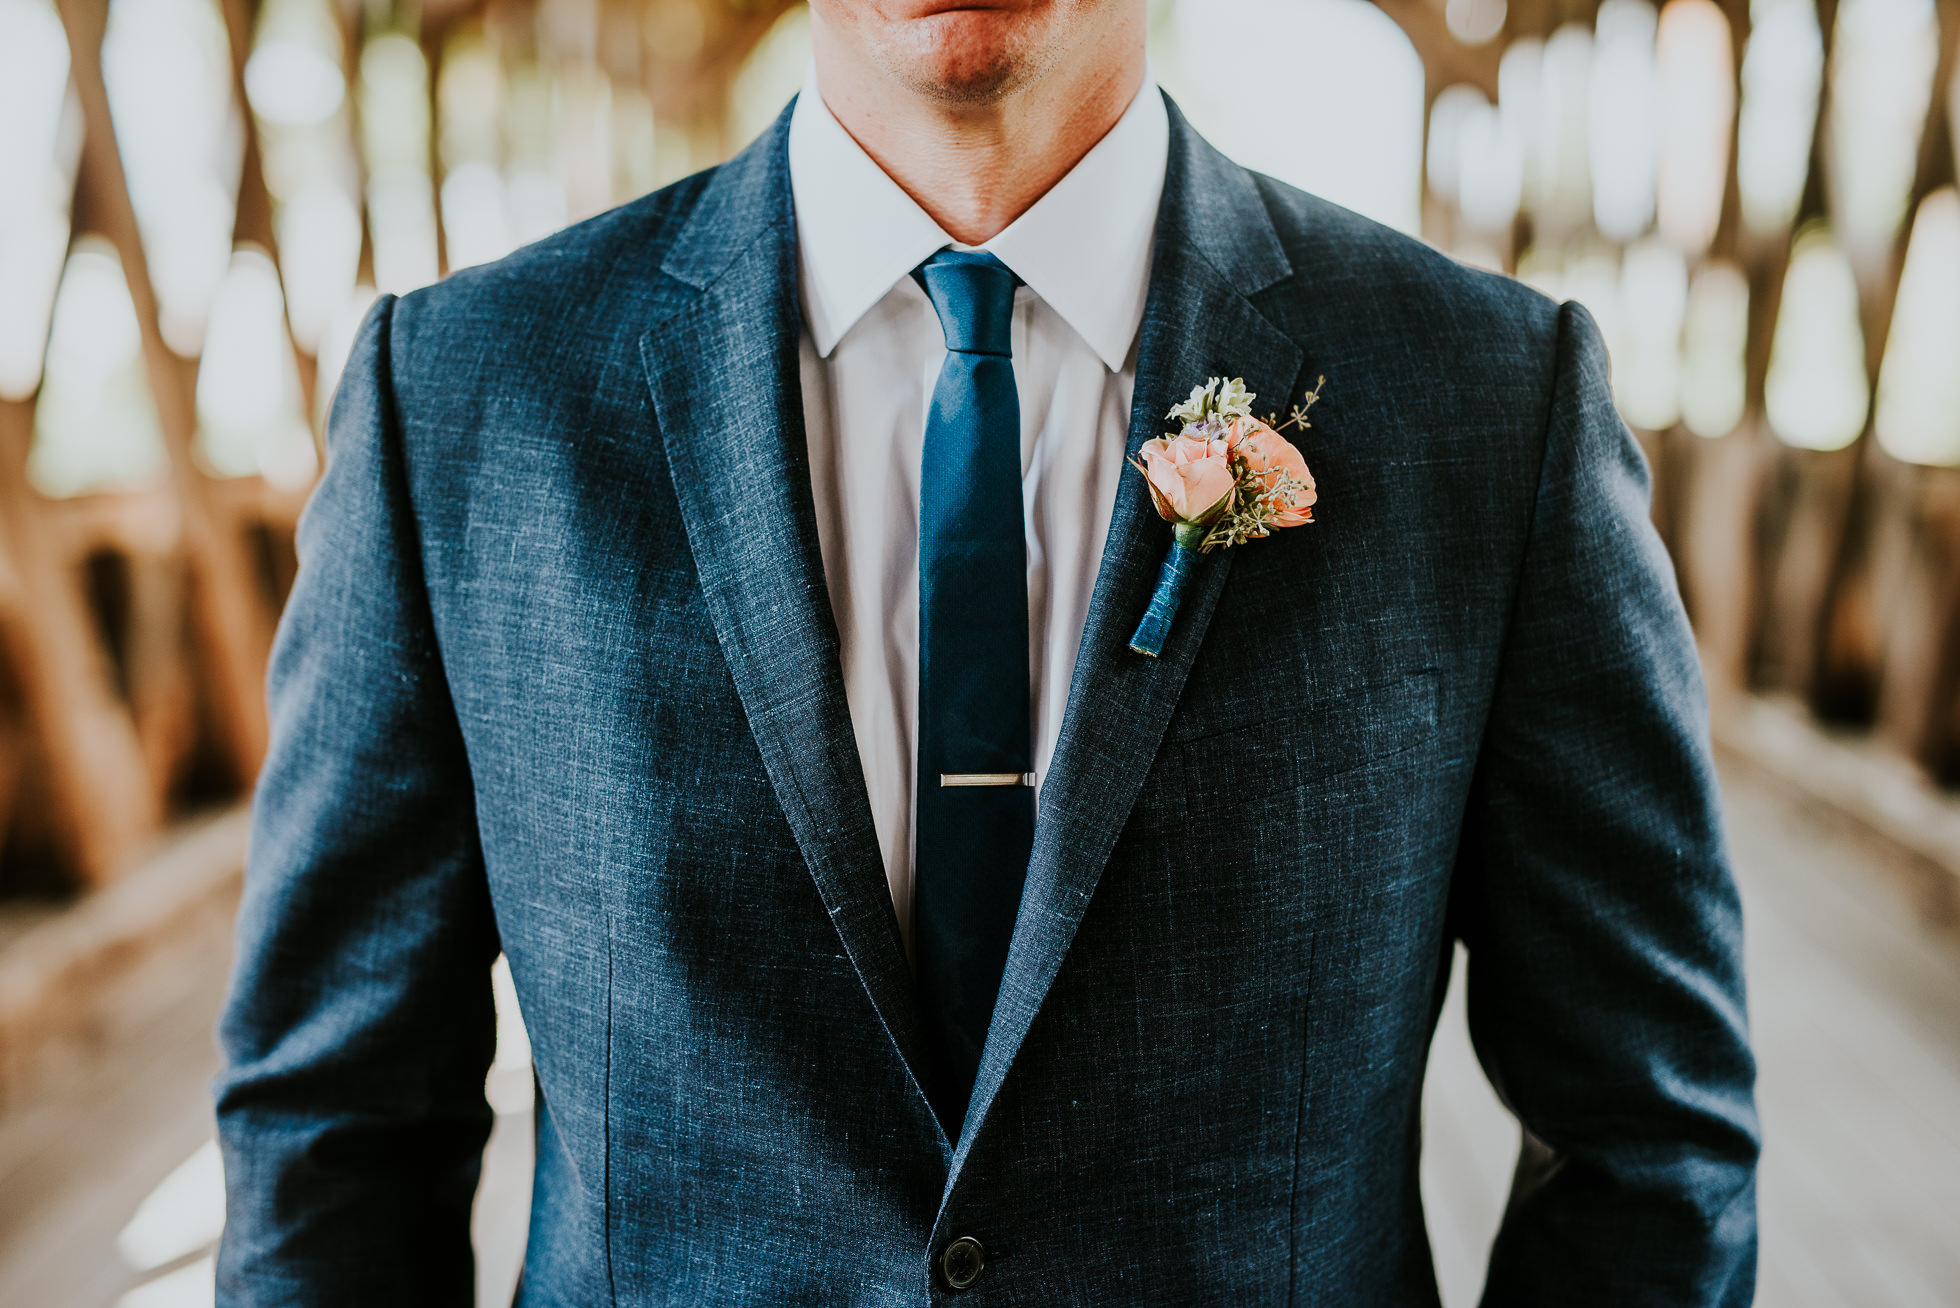 groom's suit at olde tater barn wedding in central bridge, ny photographed by traverse the tides